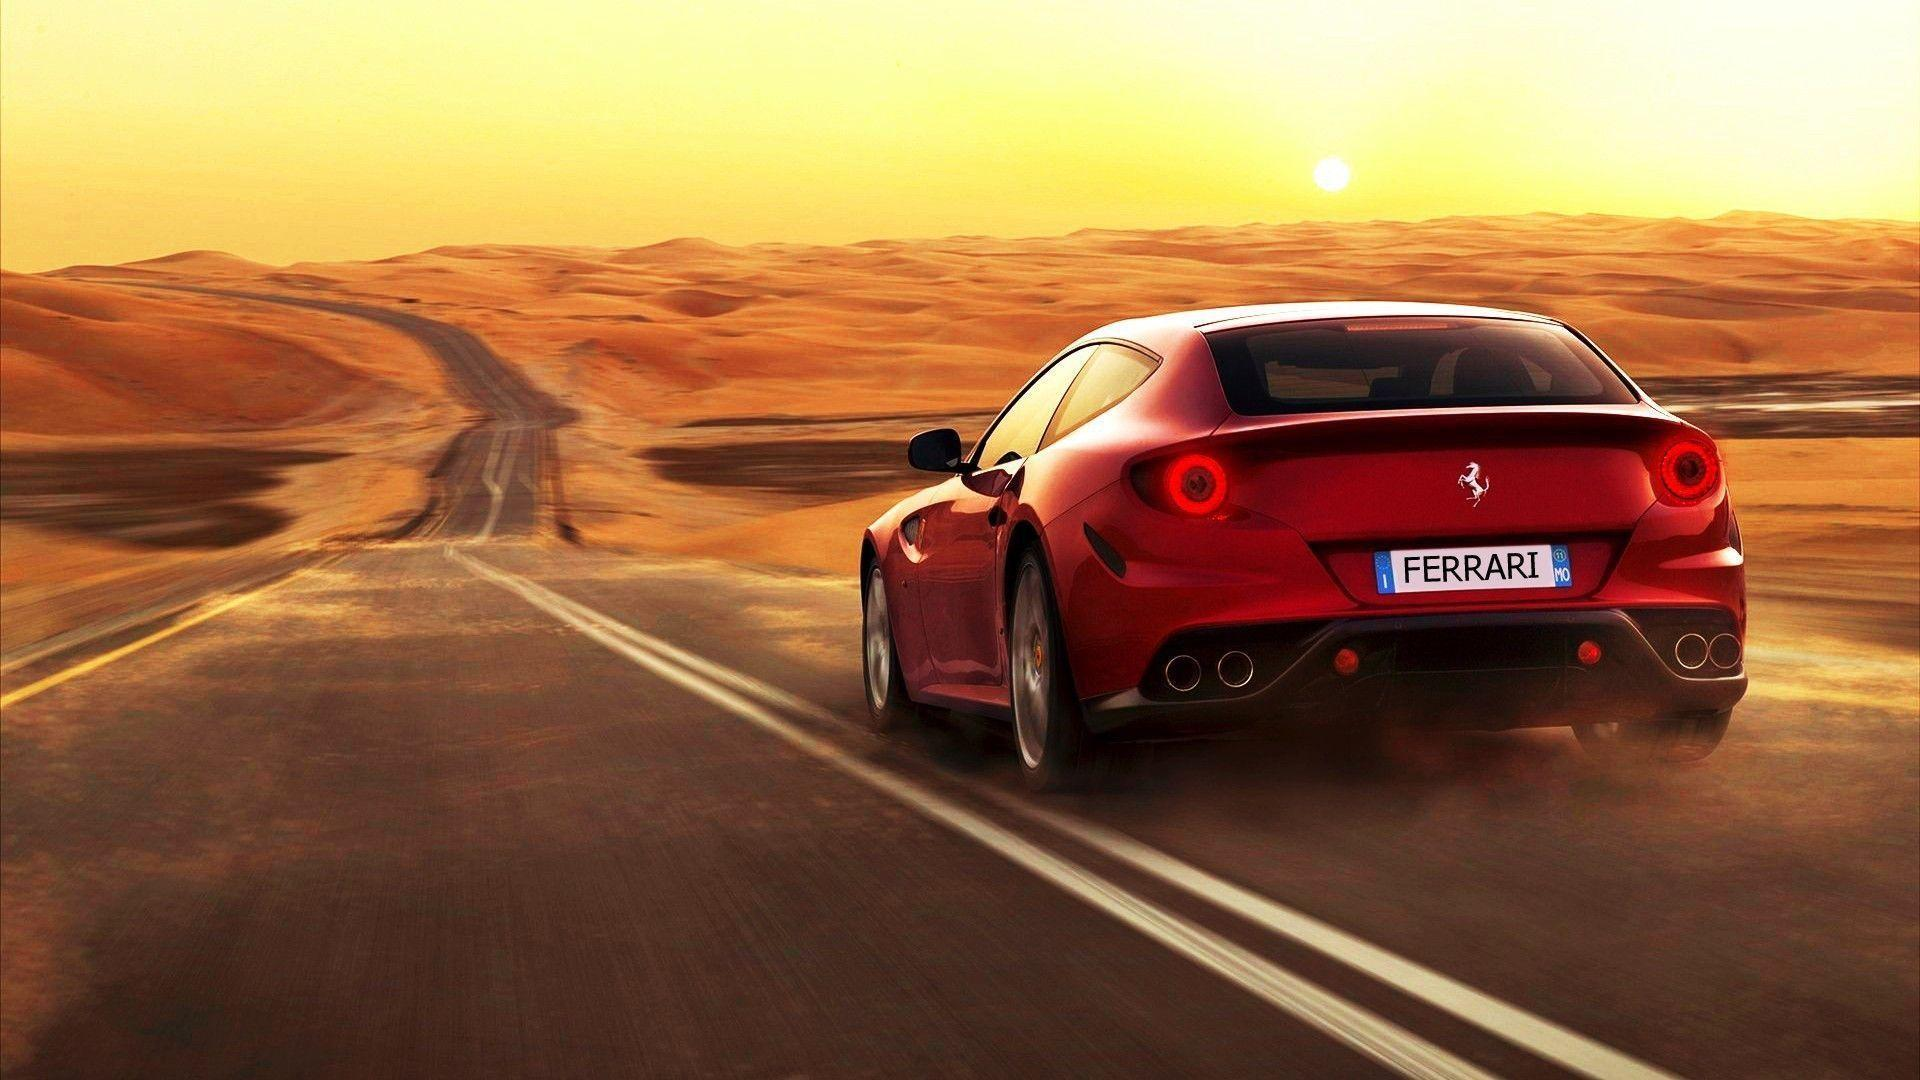 Coolest Collection of Ferrari Wallpapers & Backgrounds In HD